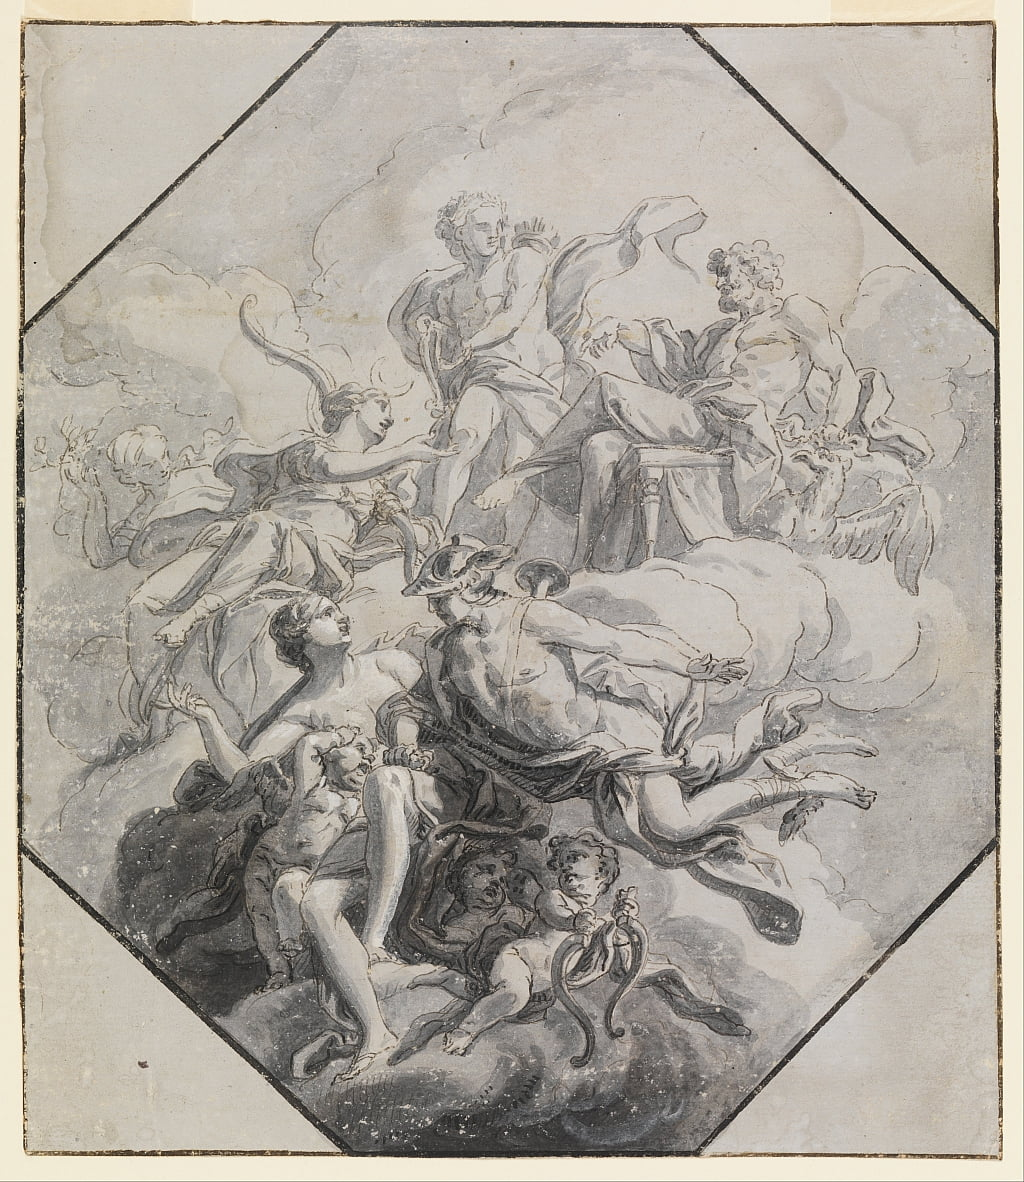 Design for a Ceiling Painting on Theme of Olympus by Antonio Manno